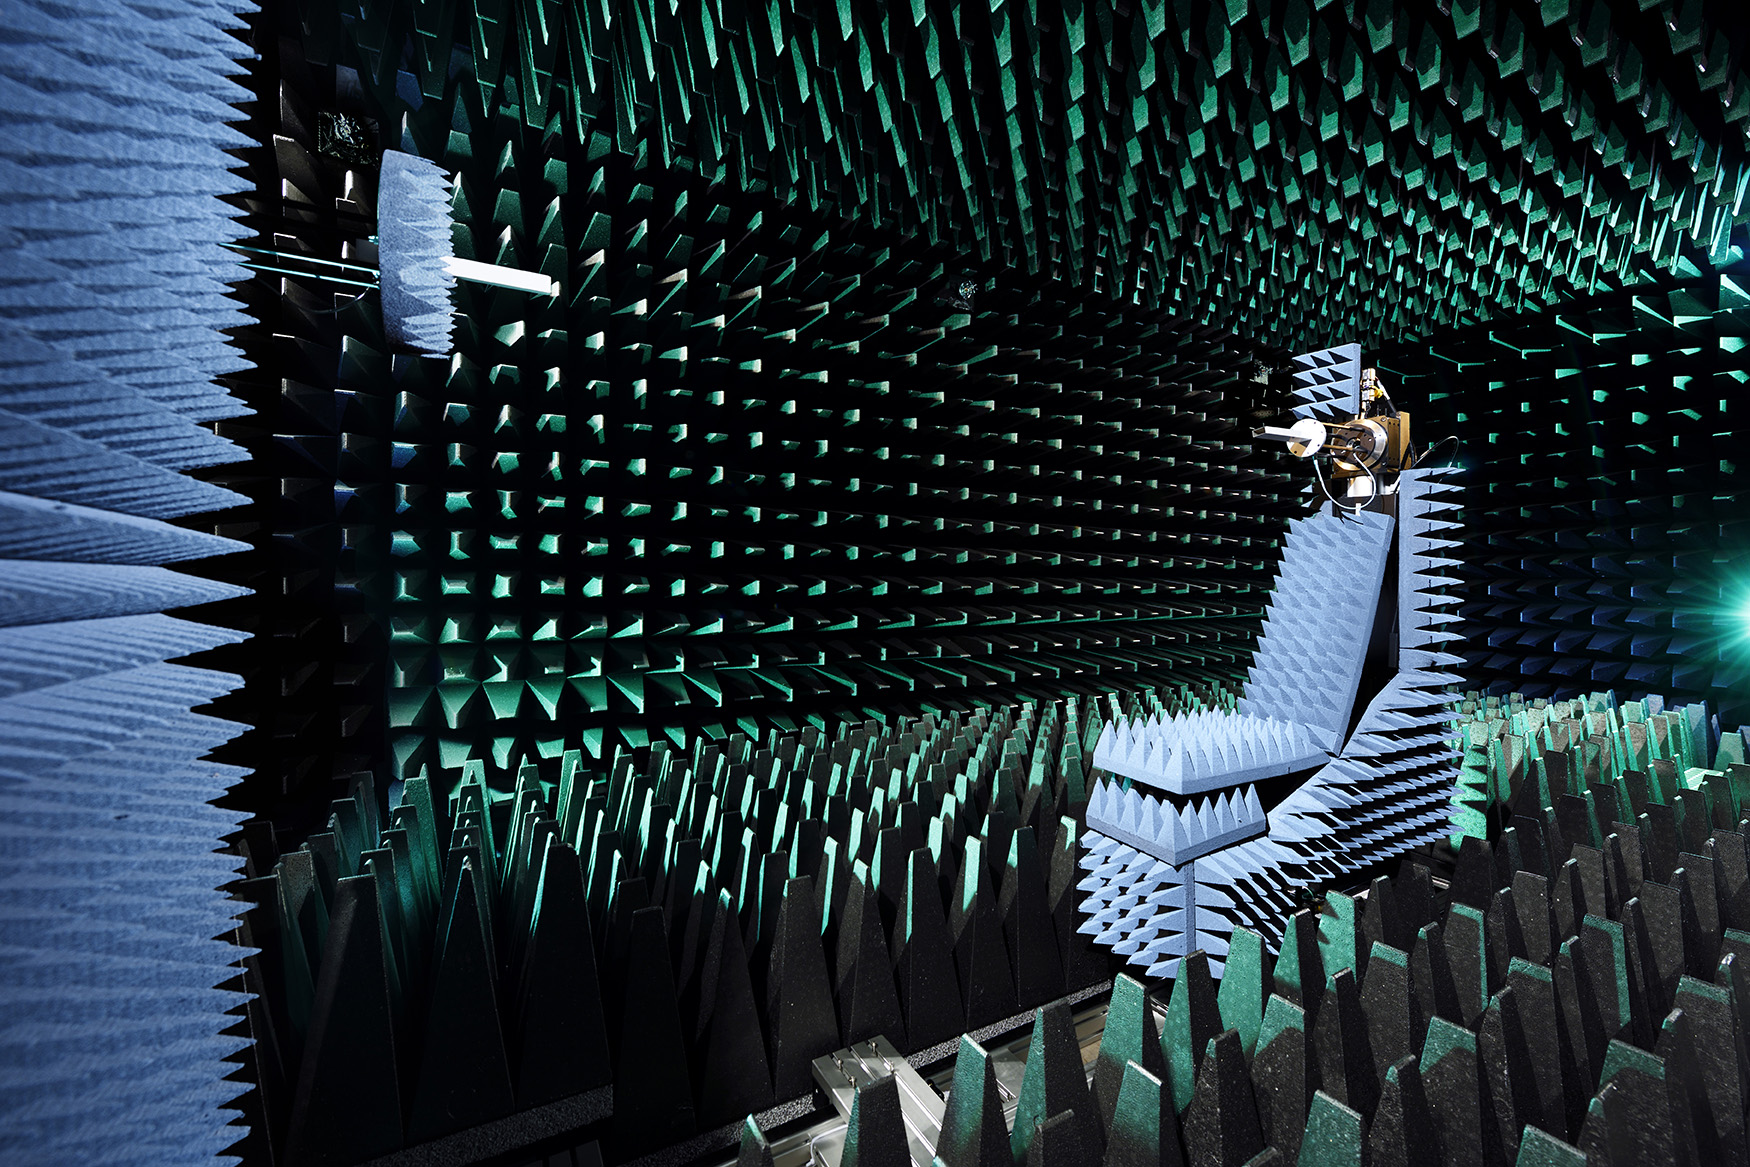 Anechoic chamber of the Centre for Wireless Technology, Eindhoven University of Technology